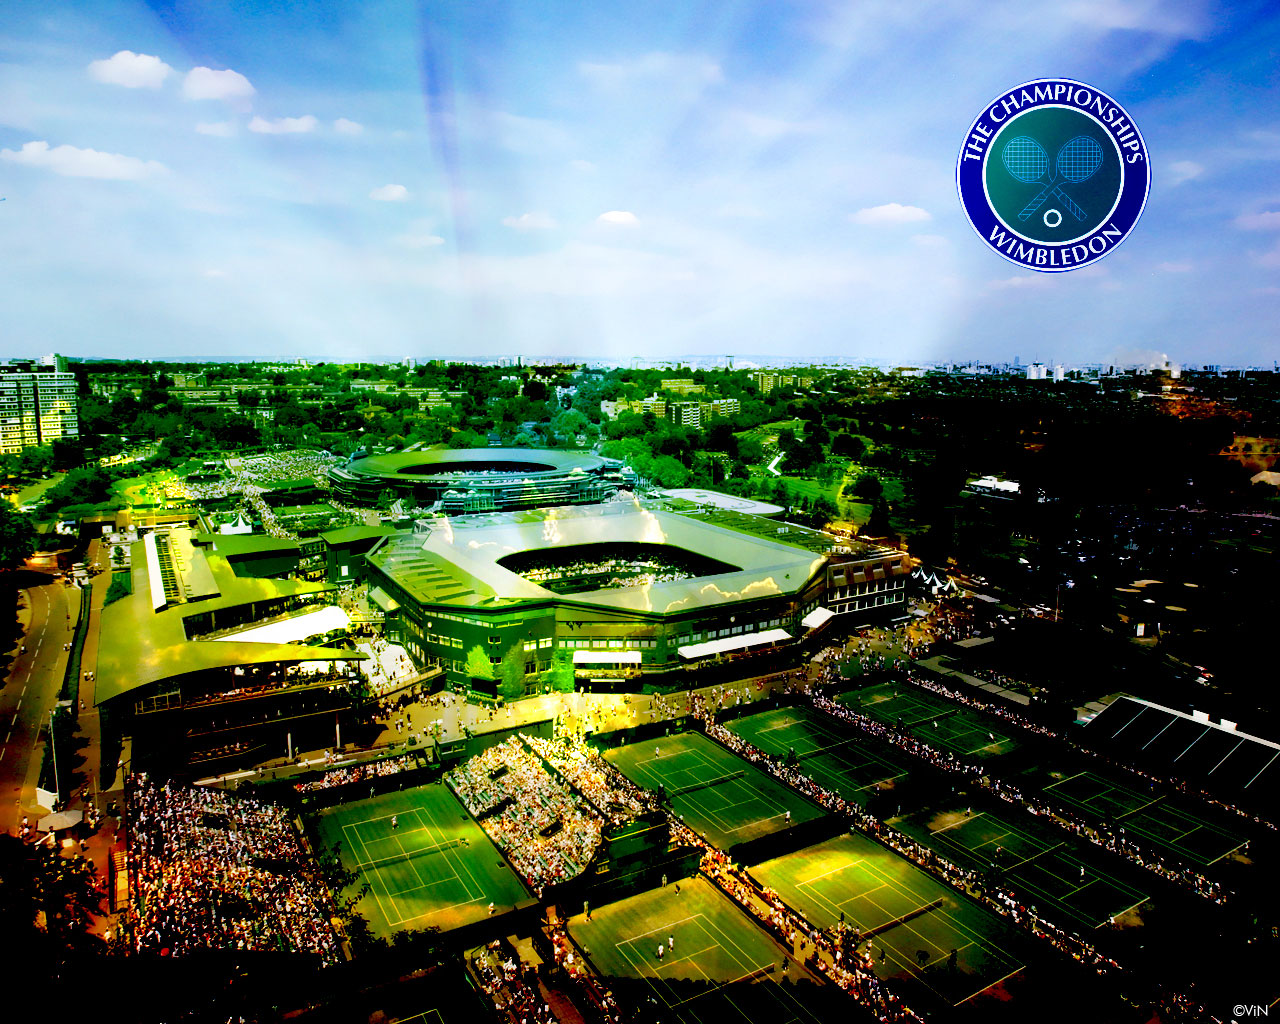 Stadium Wimbledon Hd Wallpaper Desktop